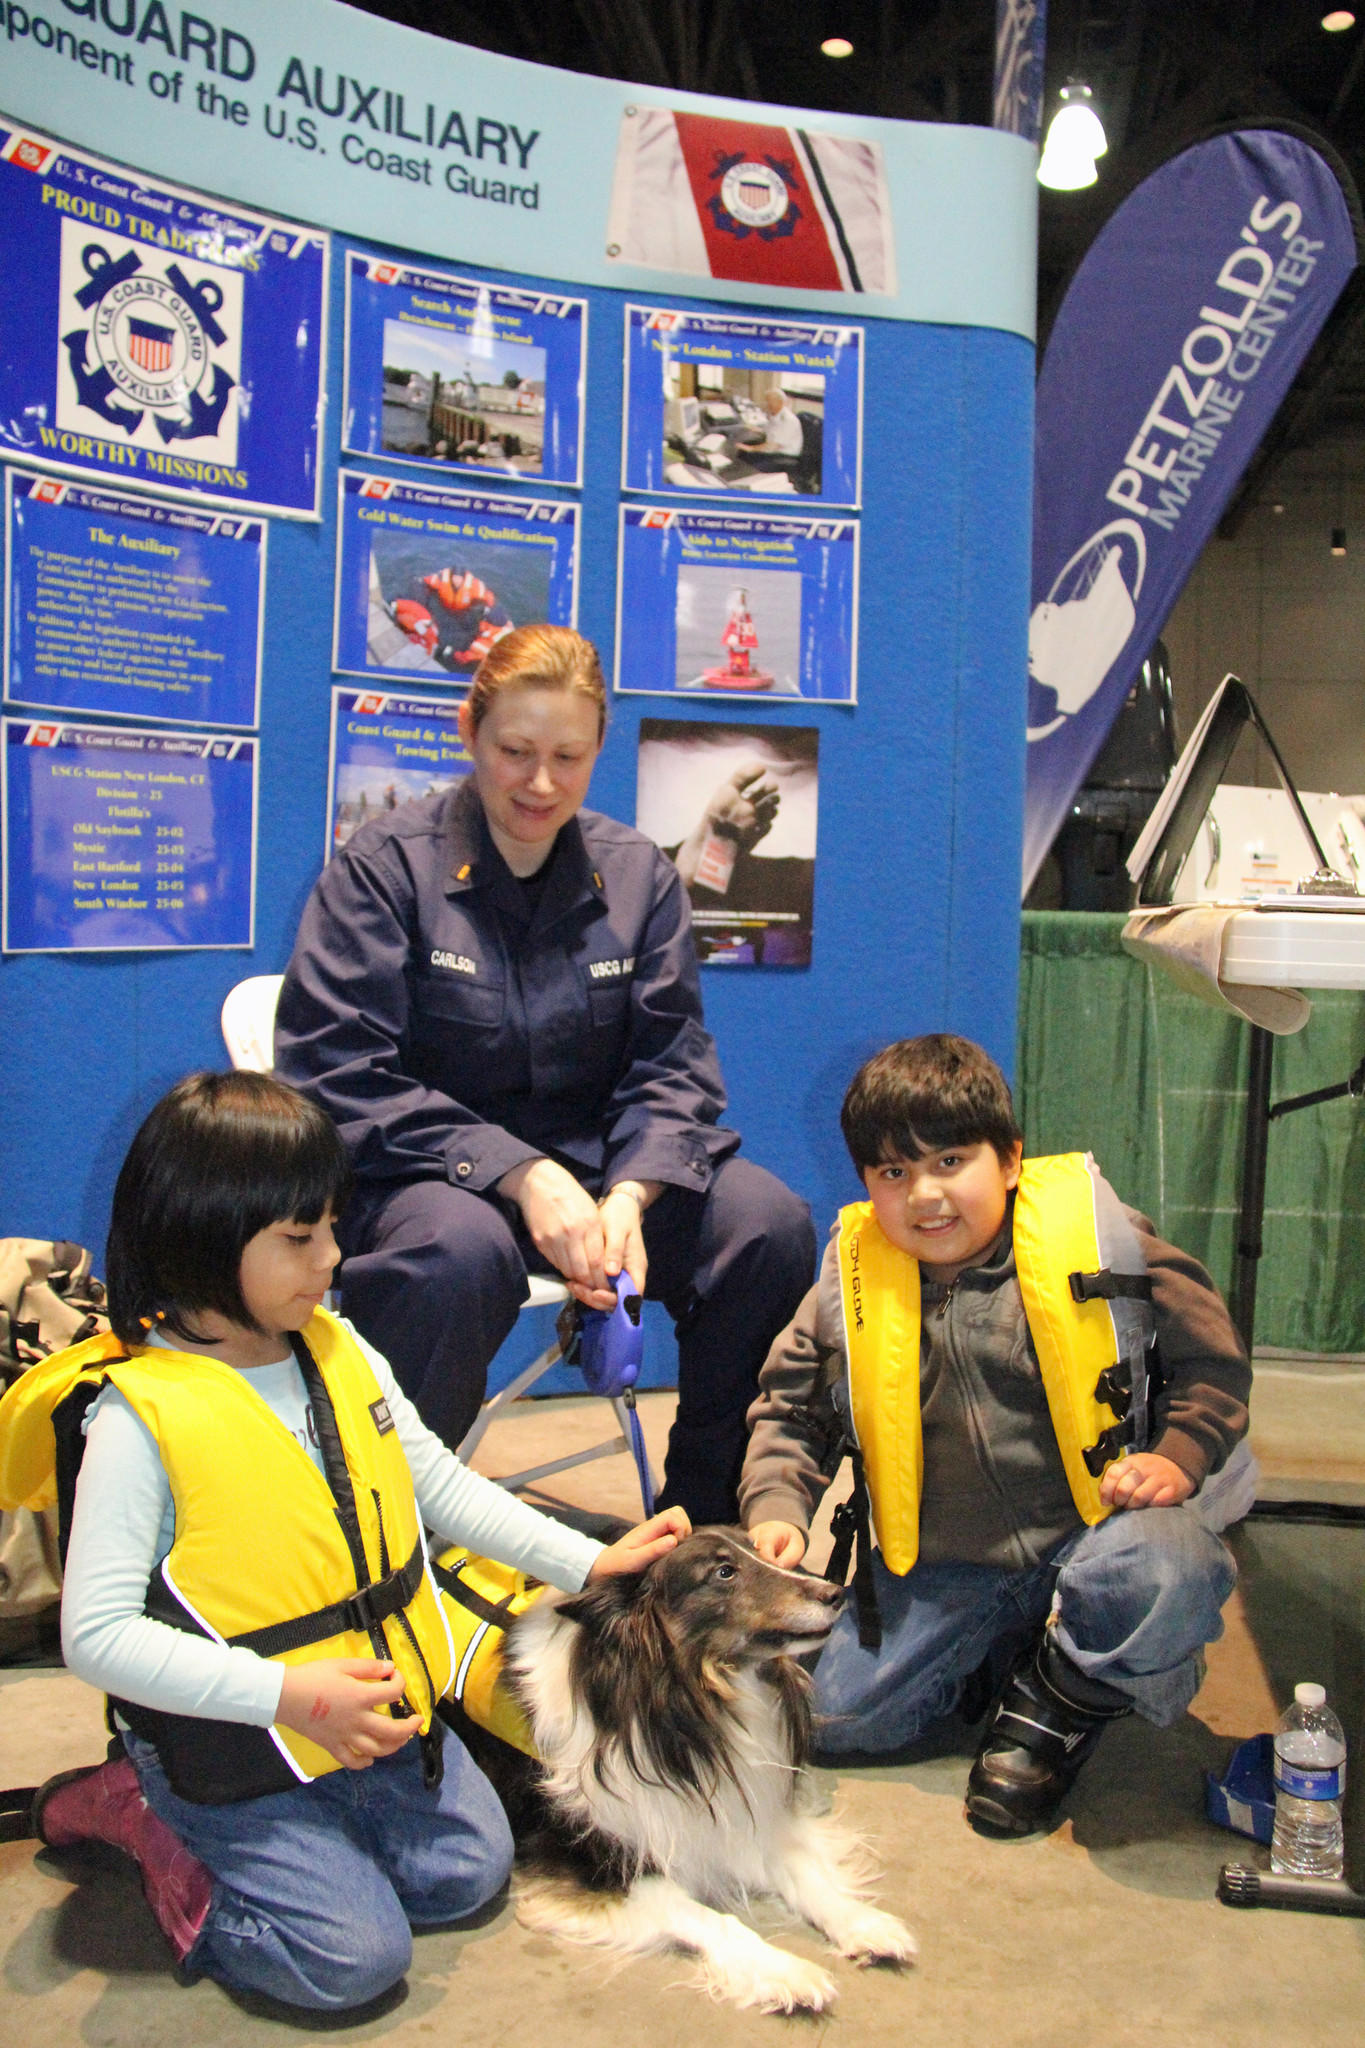 USCG Auxiliarist Kristina Carlson, center, keeps an eye on Remmie, her eight year old Sheltie, and mascot of the United States Coast Guard Auxiliary.